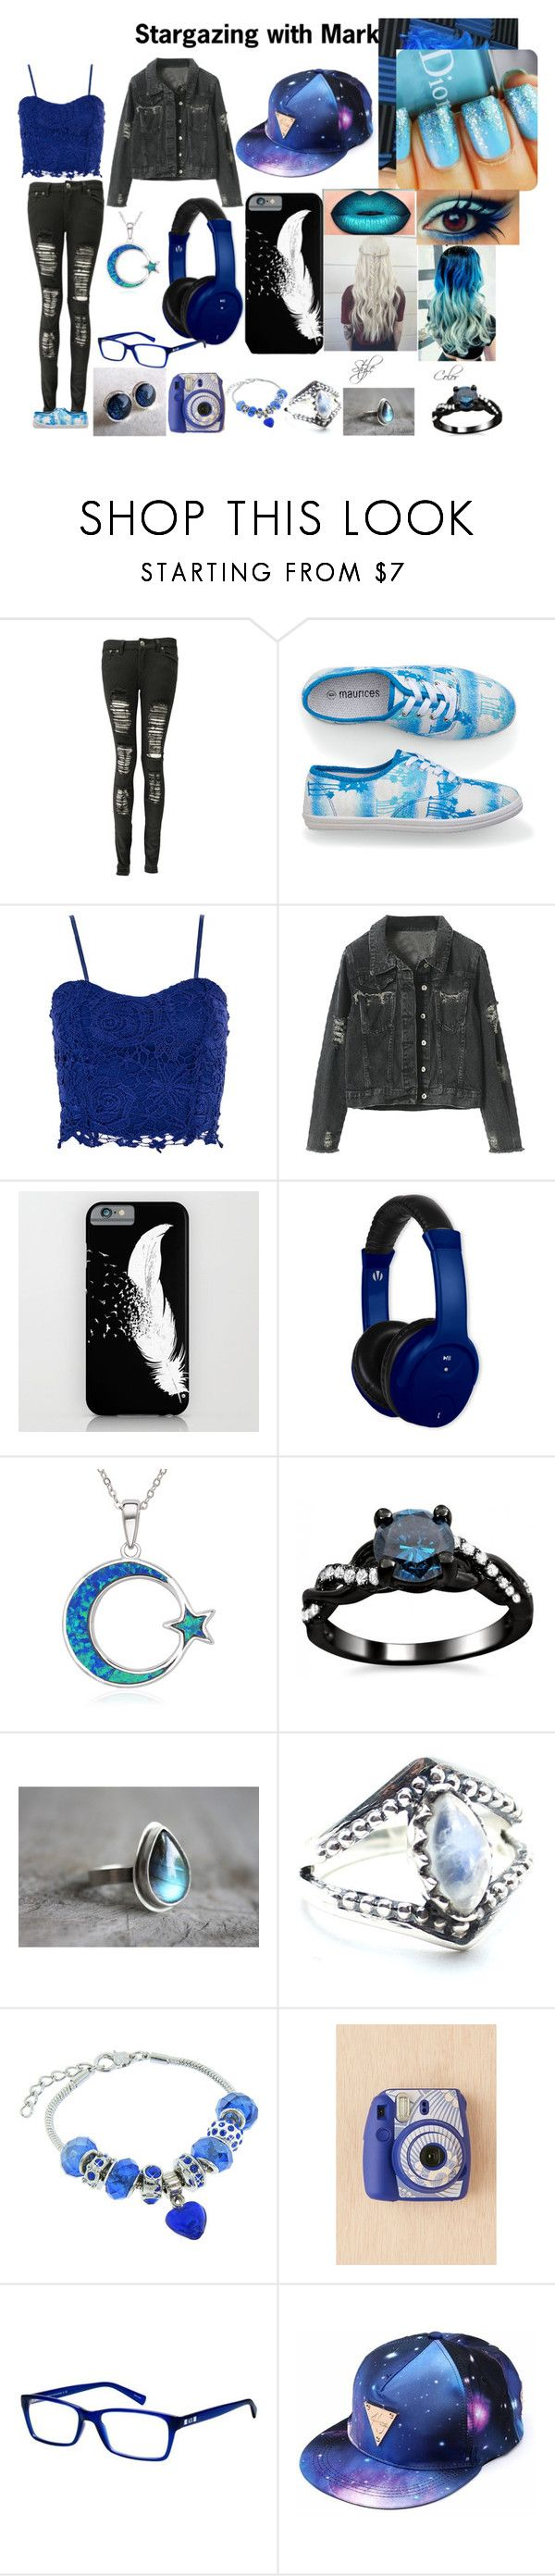 """Stargazing with Markiplier"" by puppylover32203 on Polyvore featuring Boohoo, maurices, Dorothy Perkins, Vivitar, La Preciosa, Child Of Wild, Eternally Haute, Fujifilm and Armani Exchange"